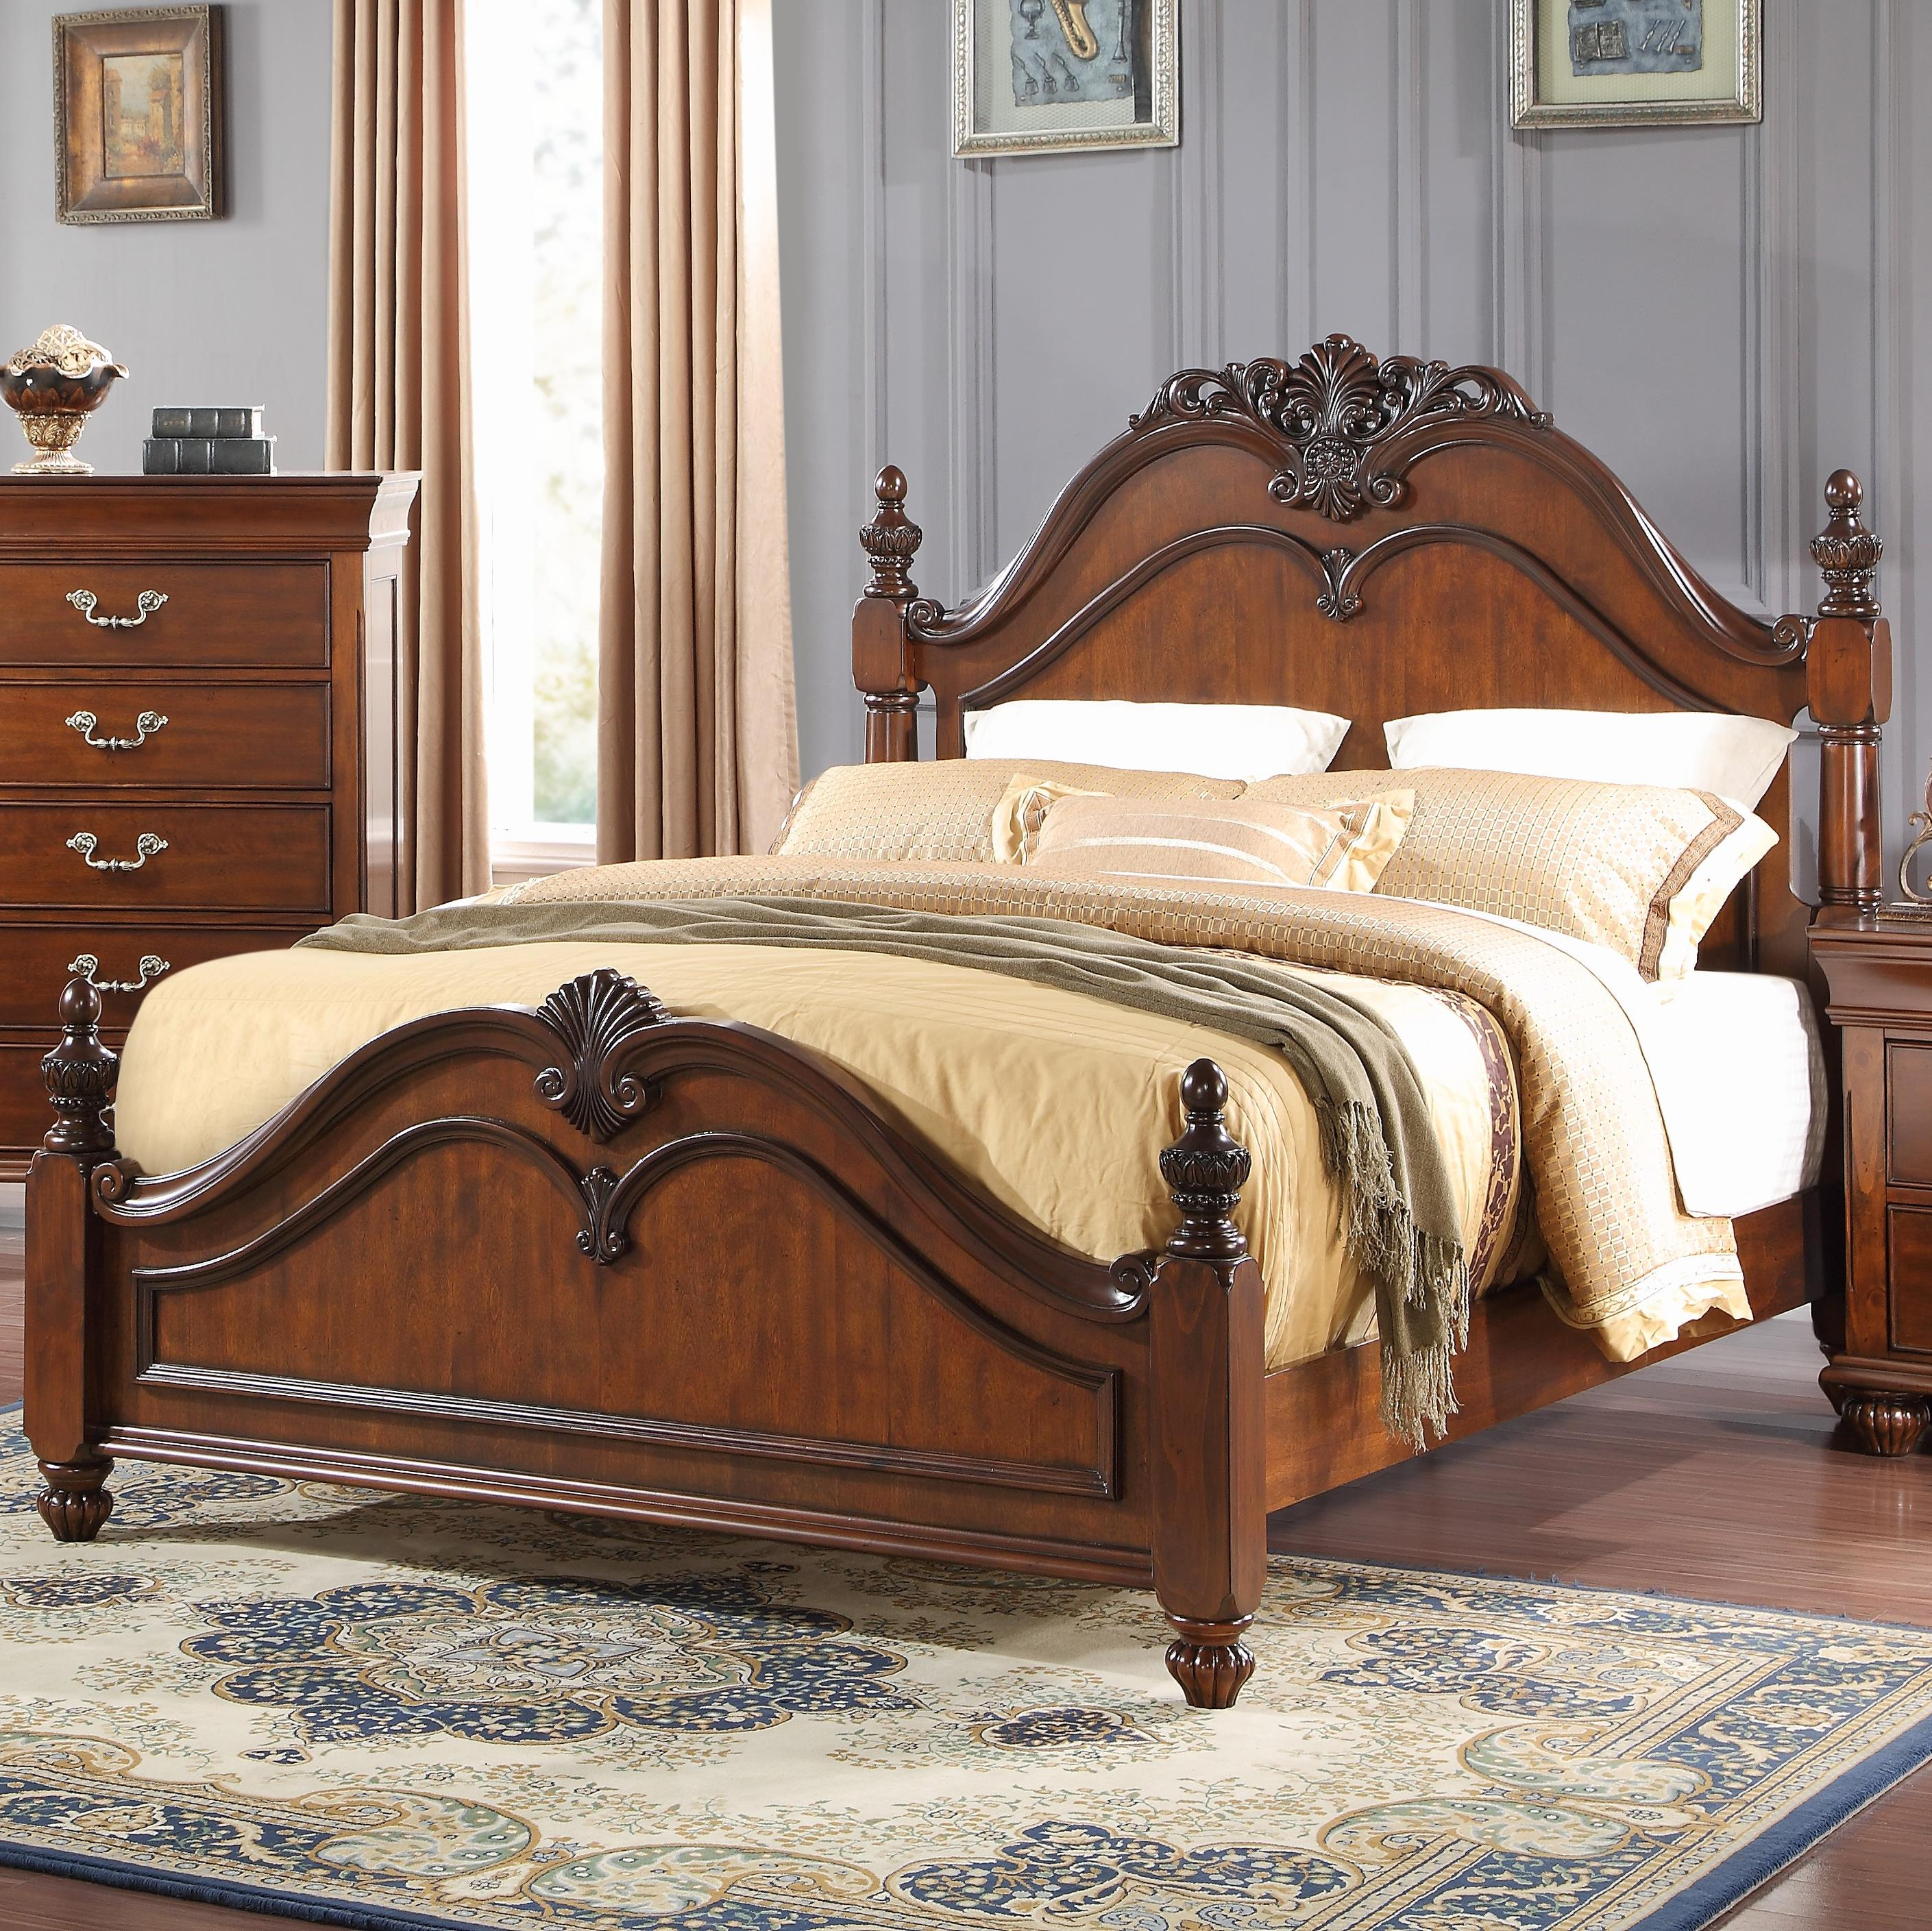 Poster Bed Royal Furniture Poster Bed Memphis Jackson Nashville